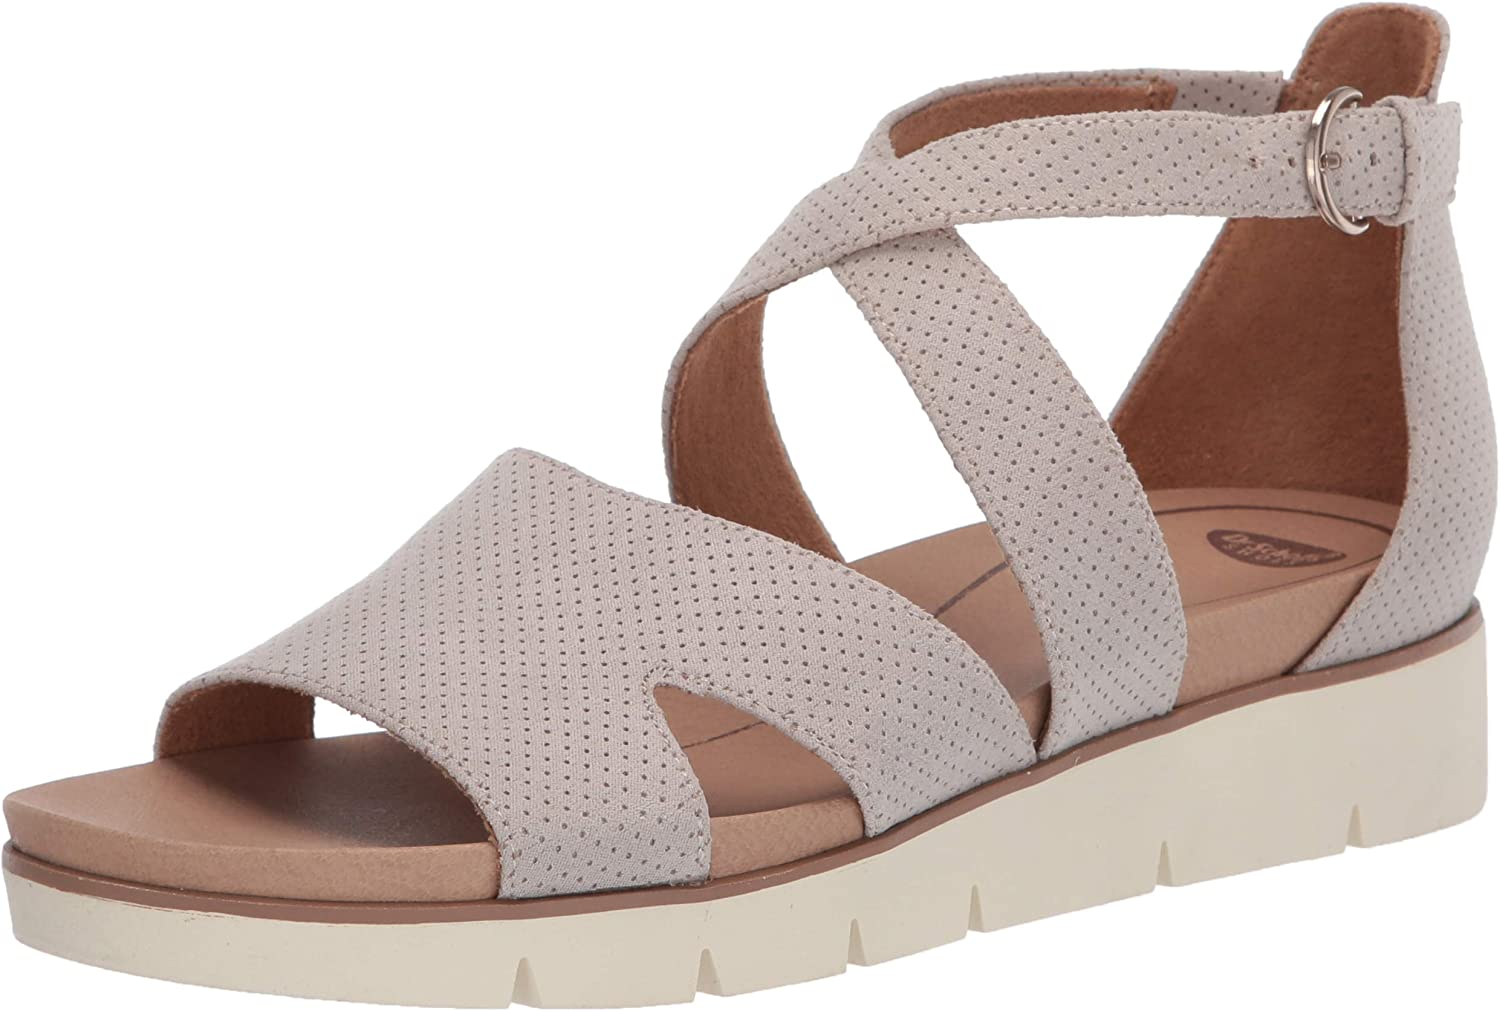 Dr. Scholl's Max 79% OFF Shoes Women's Overseas parallel import regular item Sandal Good Karma Strappies